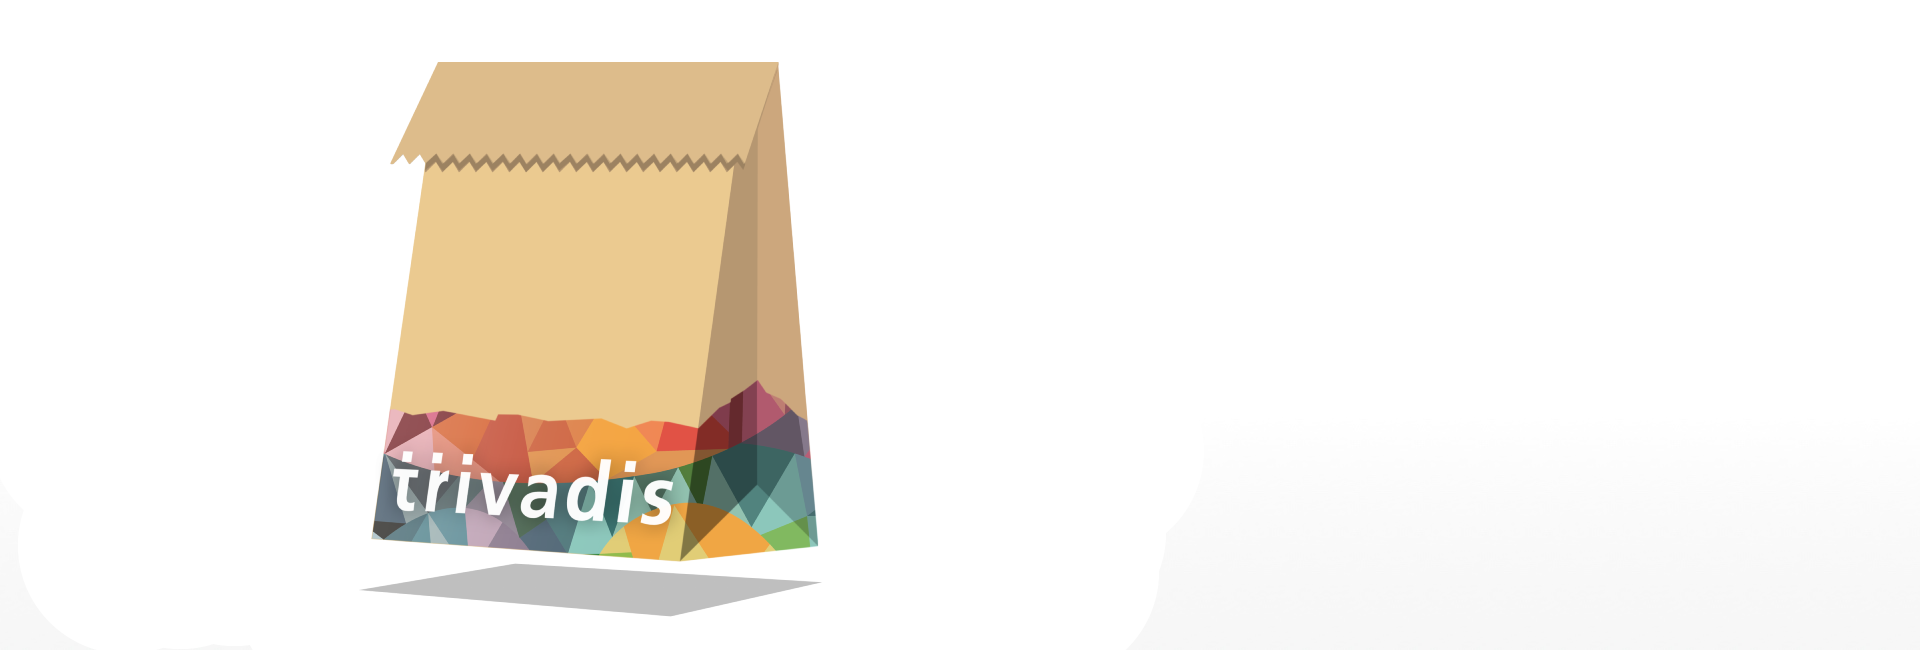 header-trivadis-digital-brown-bag-event-cloud-aws_(ohne Takeaway Pay)_1920x650px1